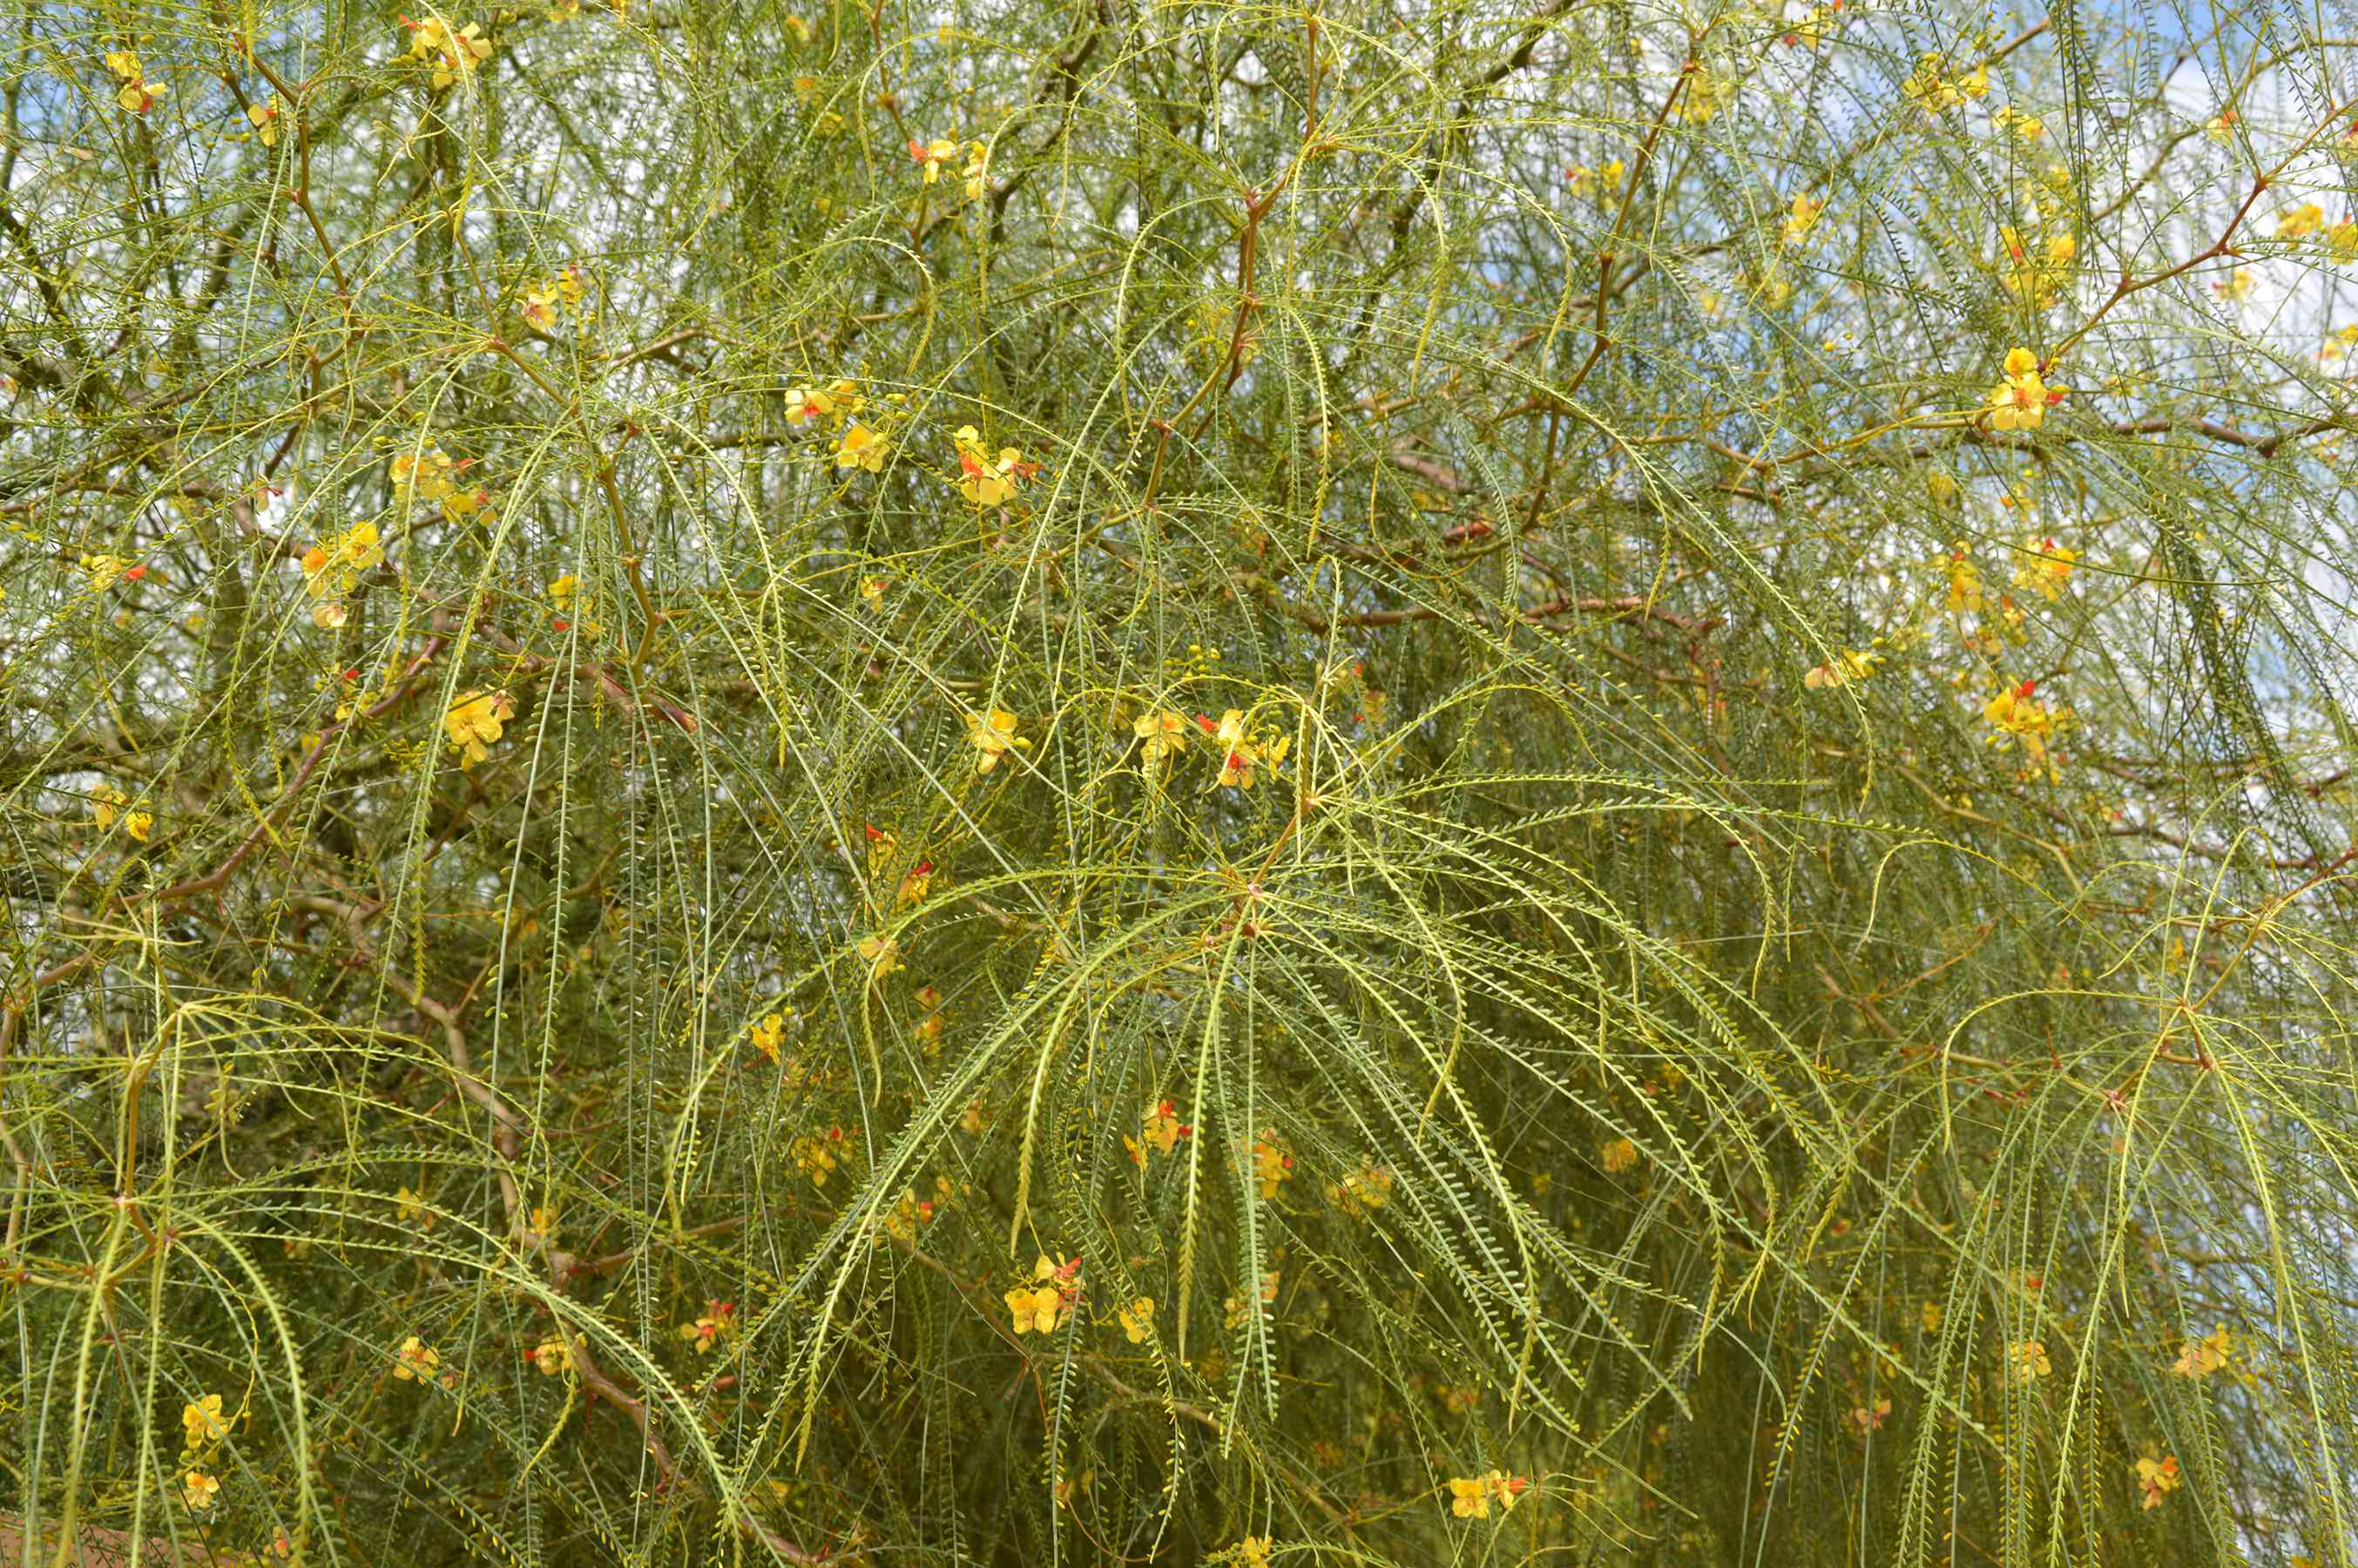 The bright yellow flowers on a Mexican palo verde (Parkinsonia aculeata)